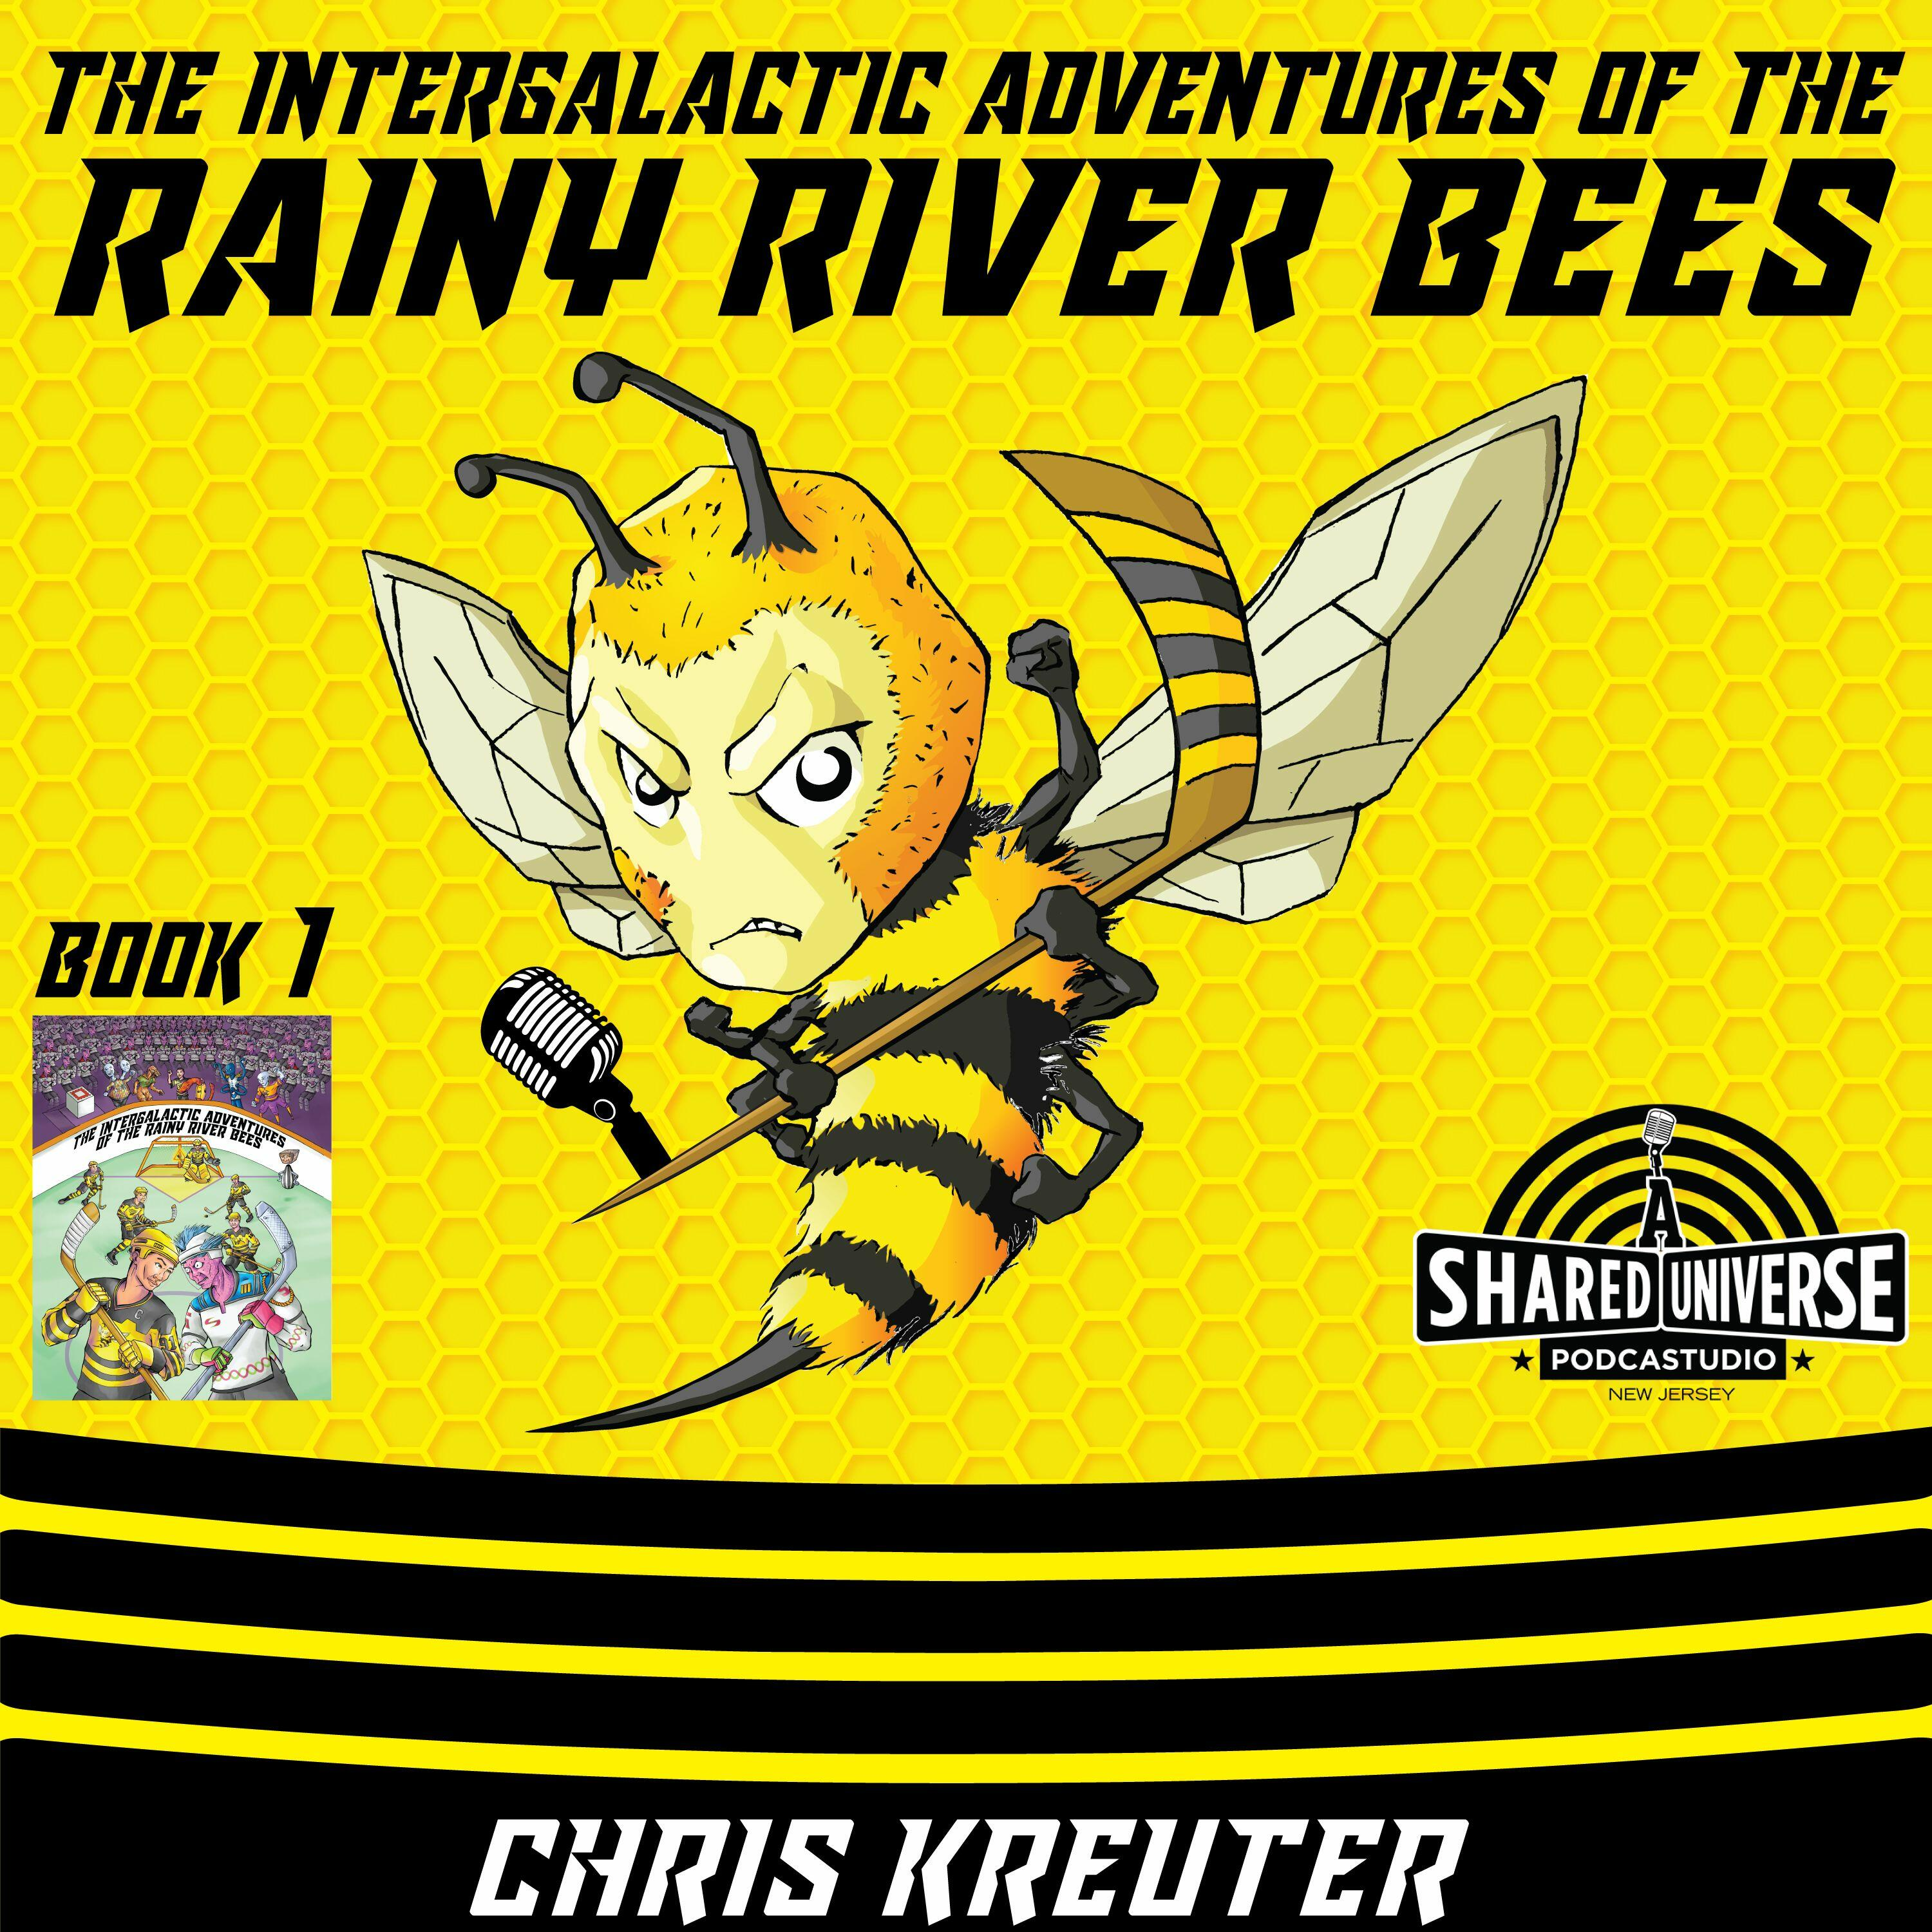 The Rainy River Bees Podcast